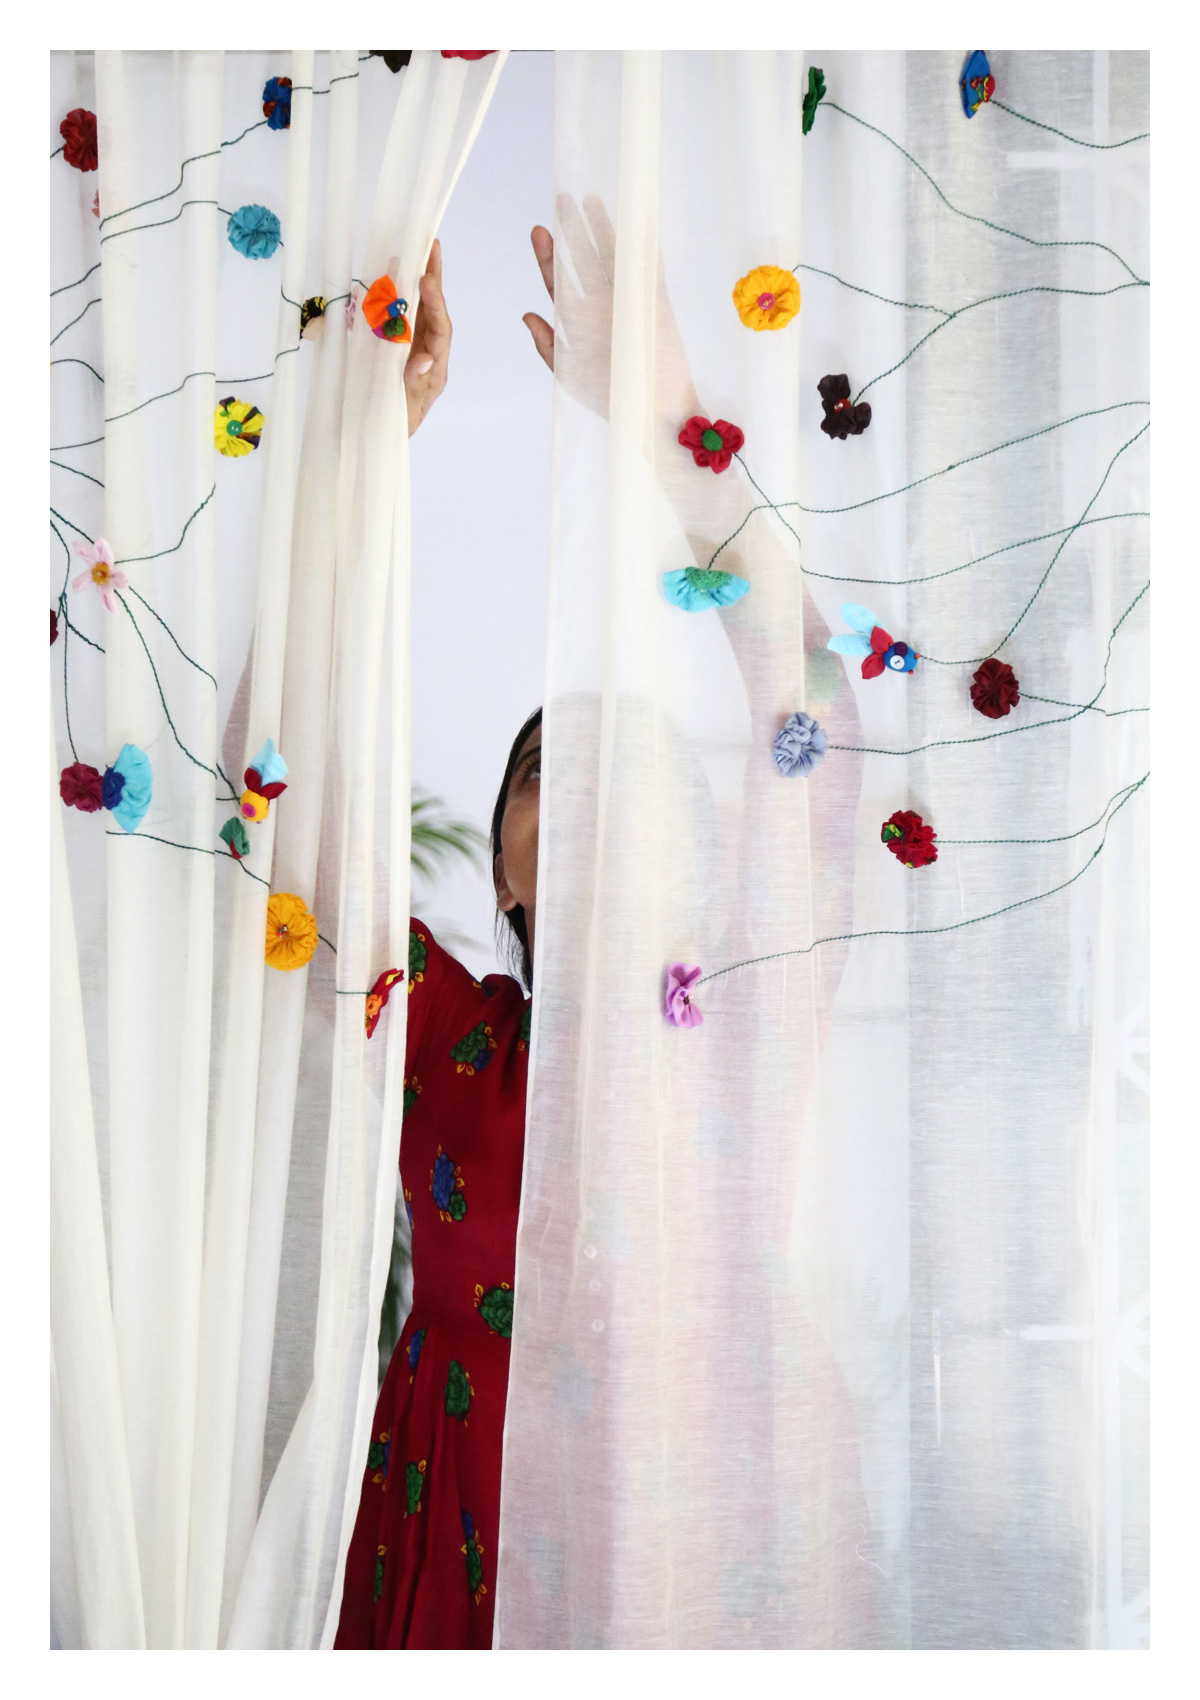 Sravana Off-White Sheer Curtain